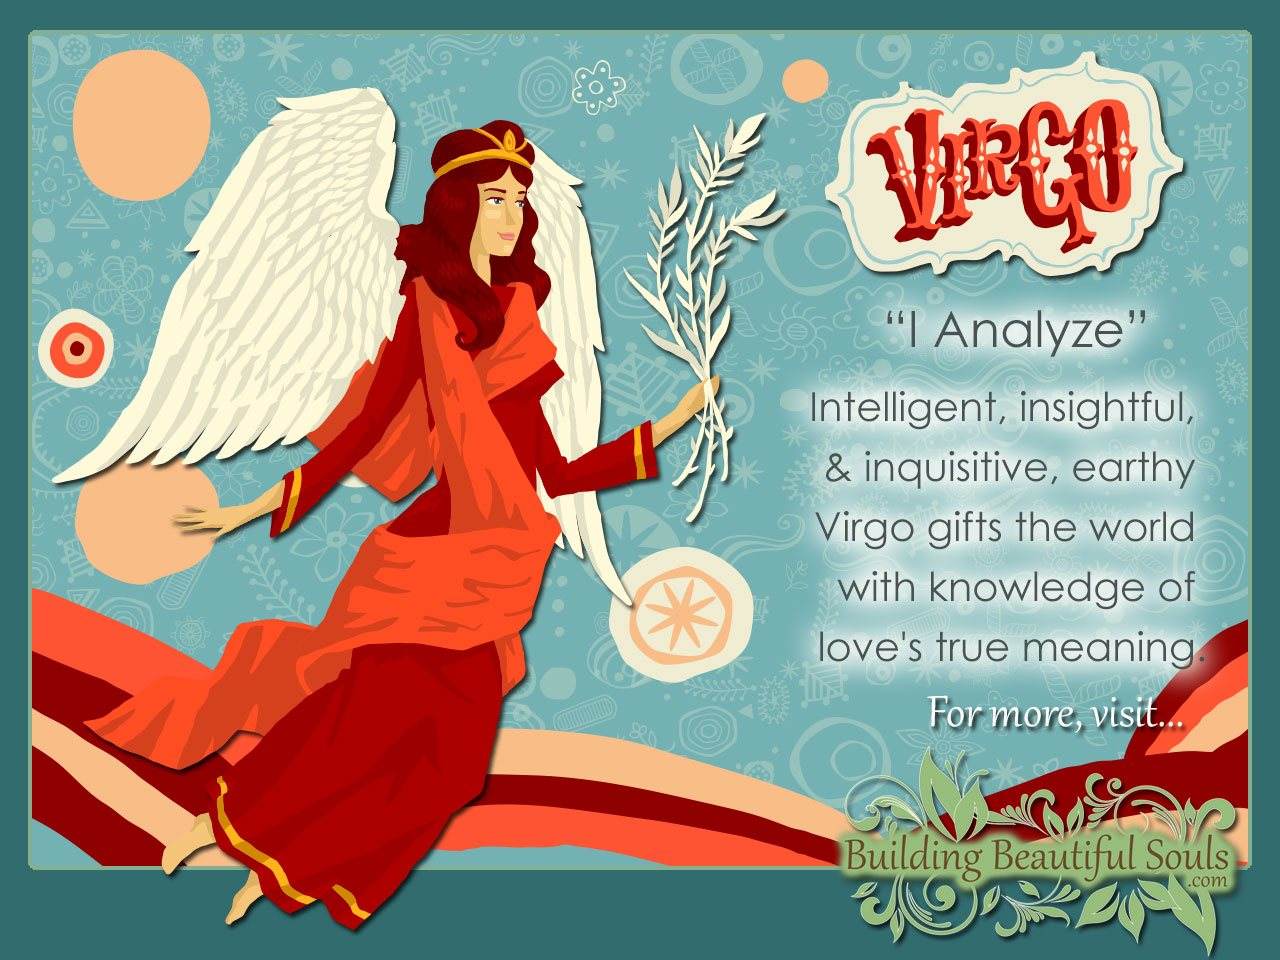 Best signs for virgo woman